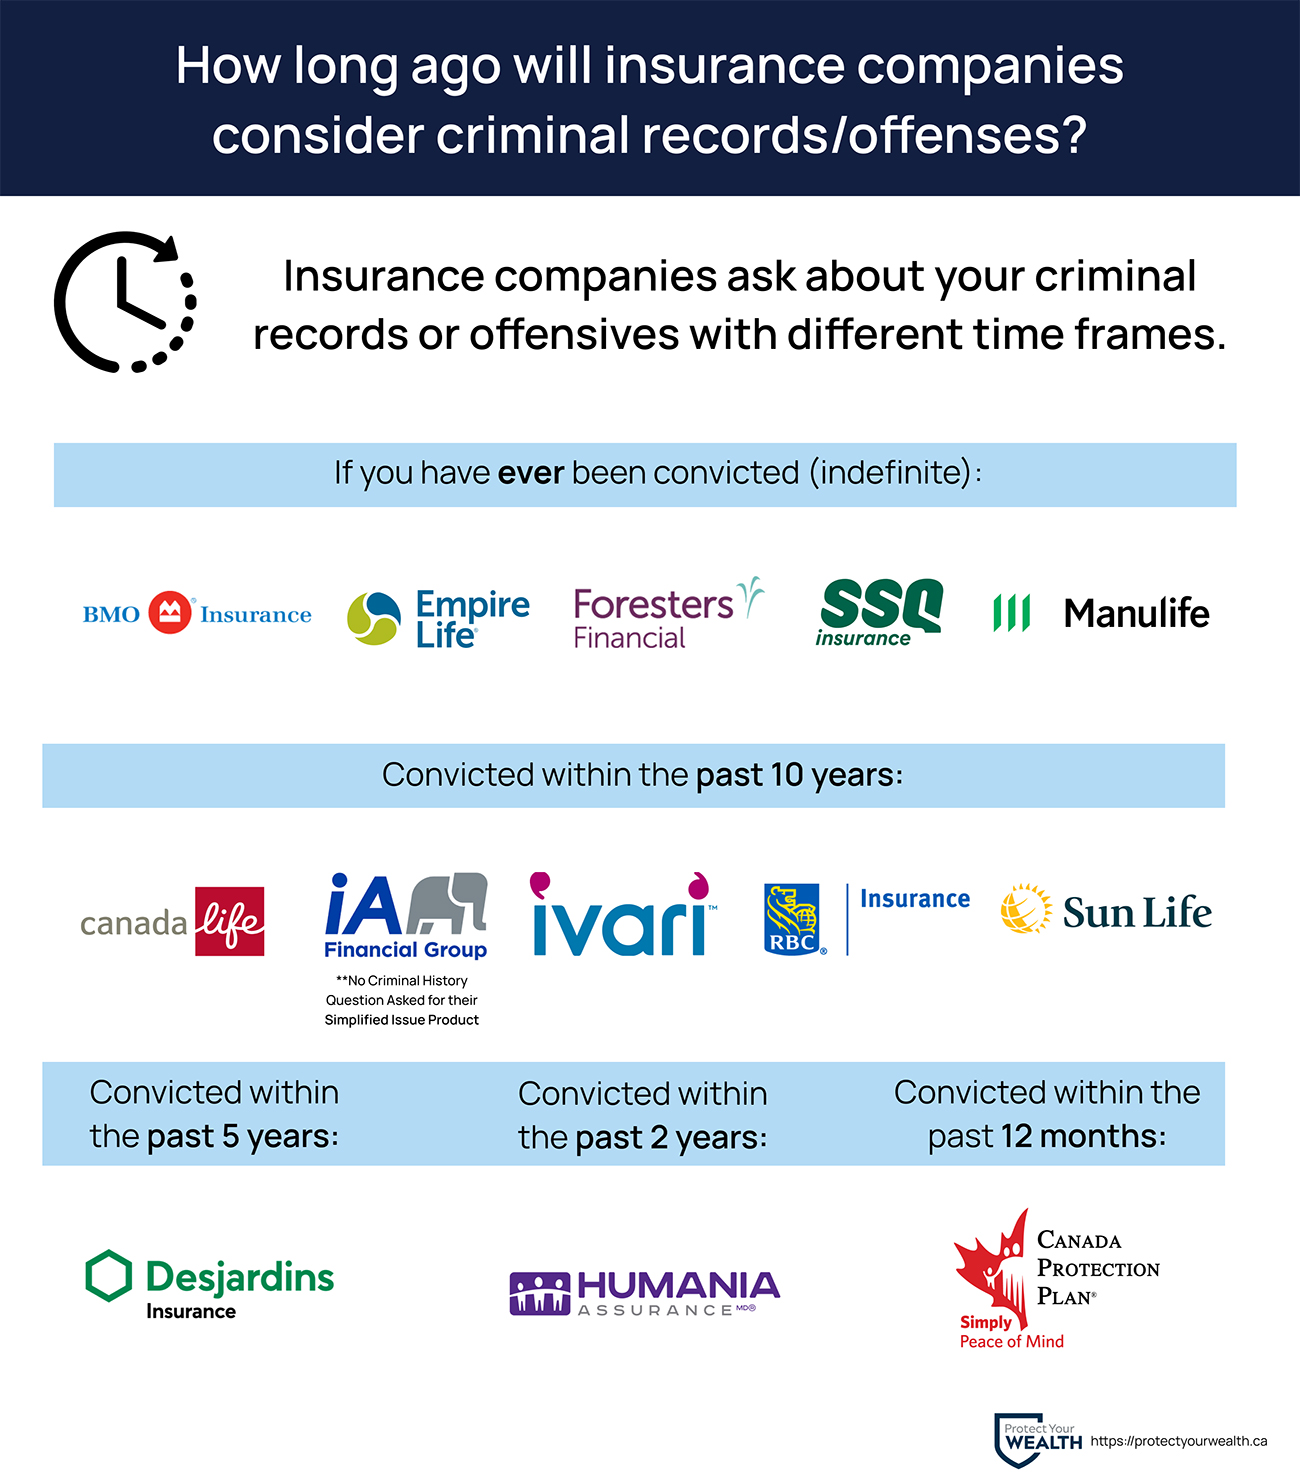 Insurance companies sorted by the years they hold criminal offenses/records in mind. Most companies will ask if you have ever been convicted, or in the past 10 years.